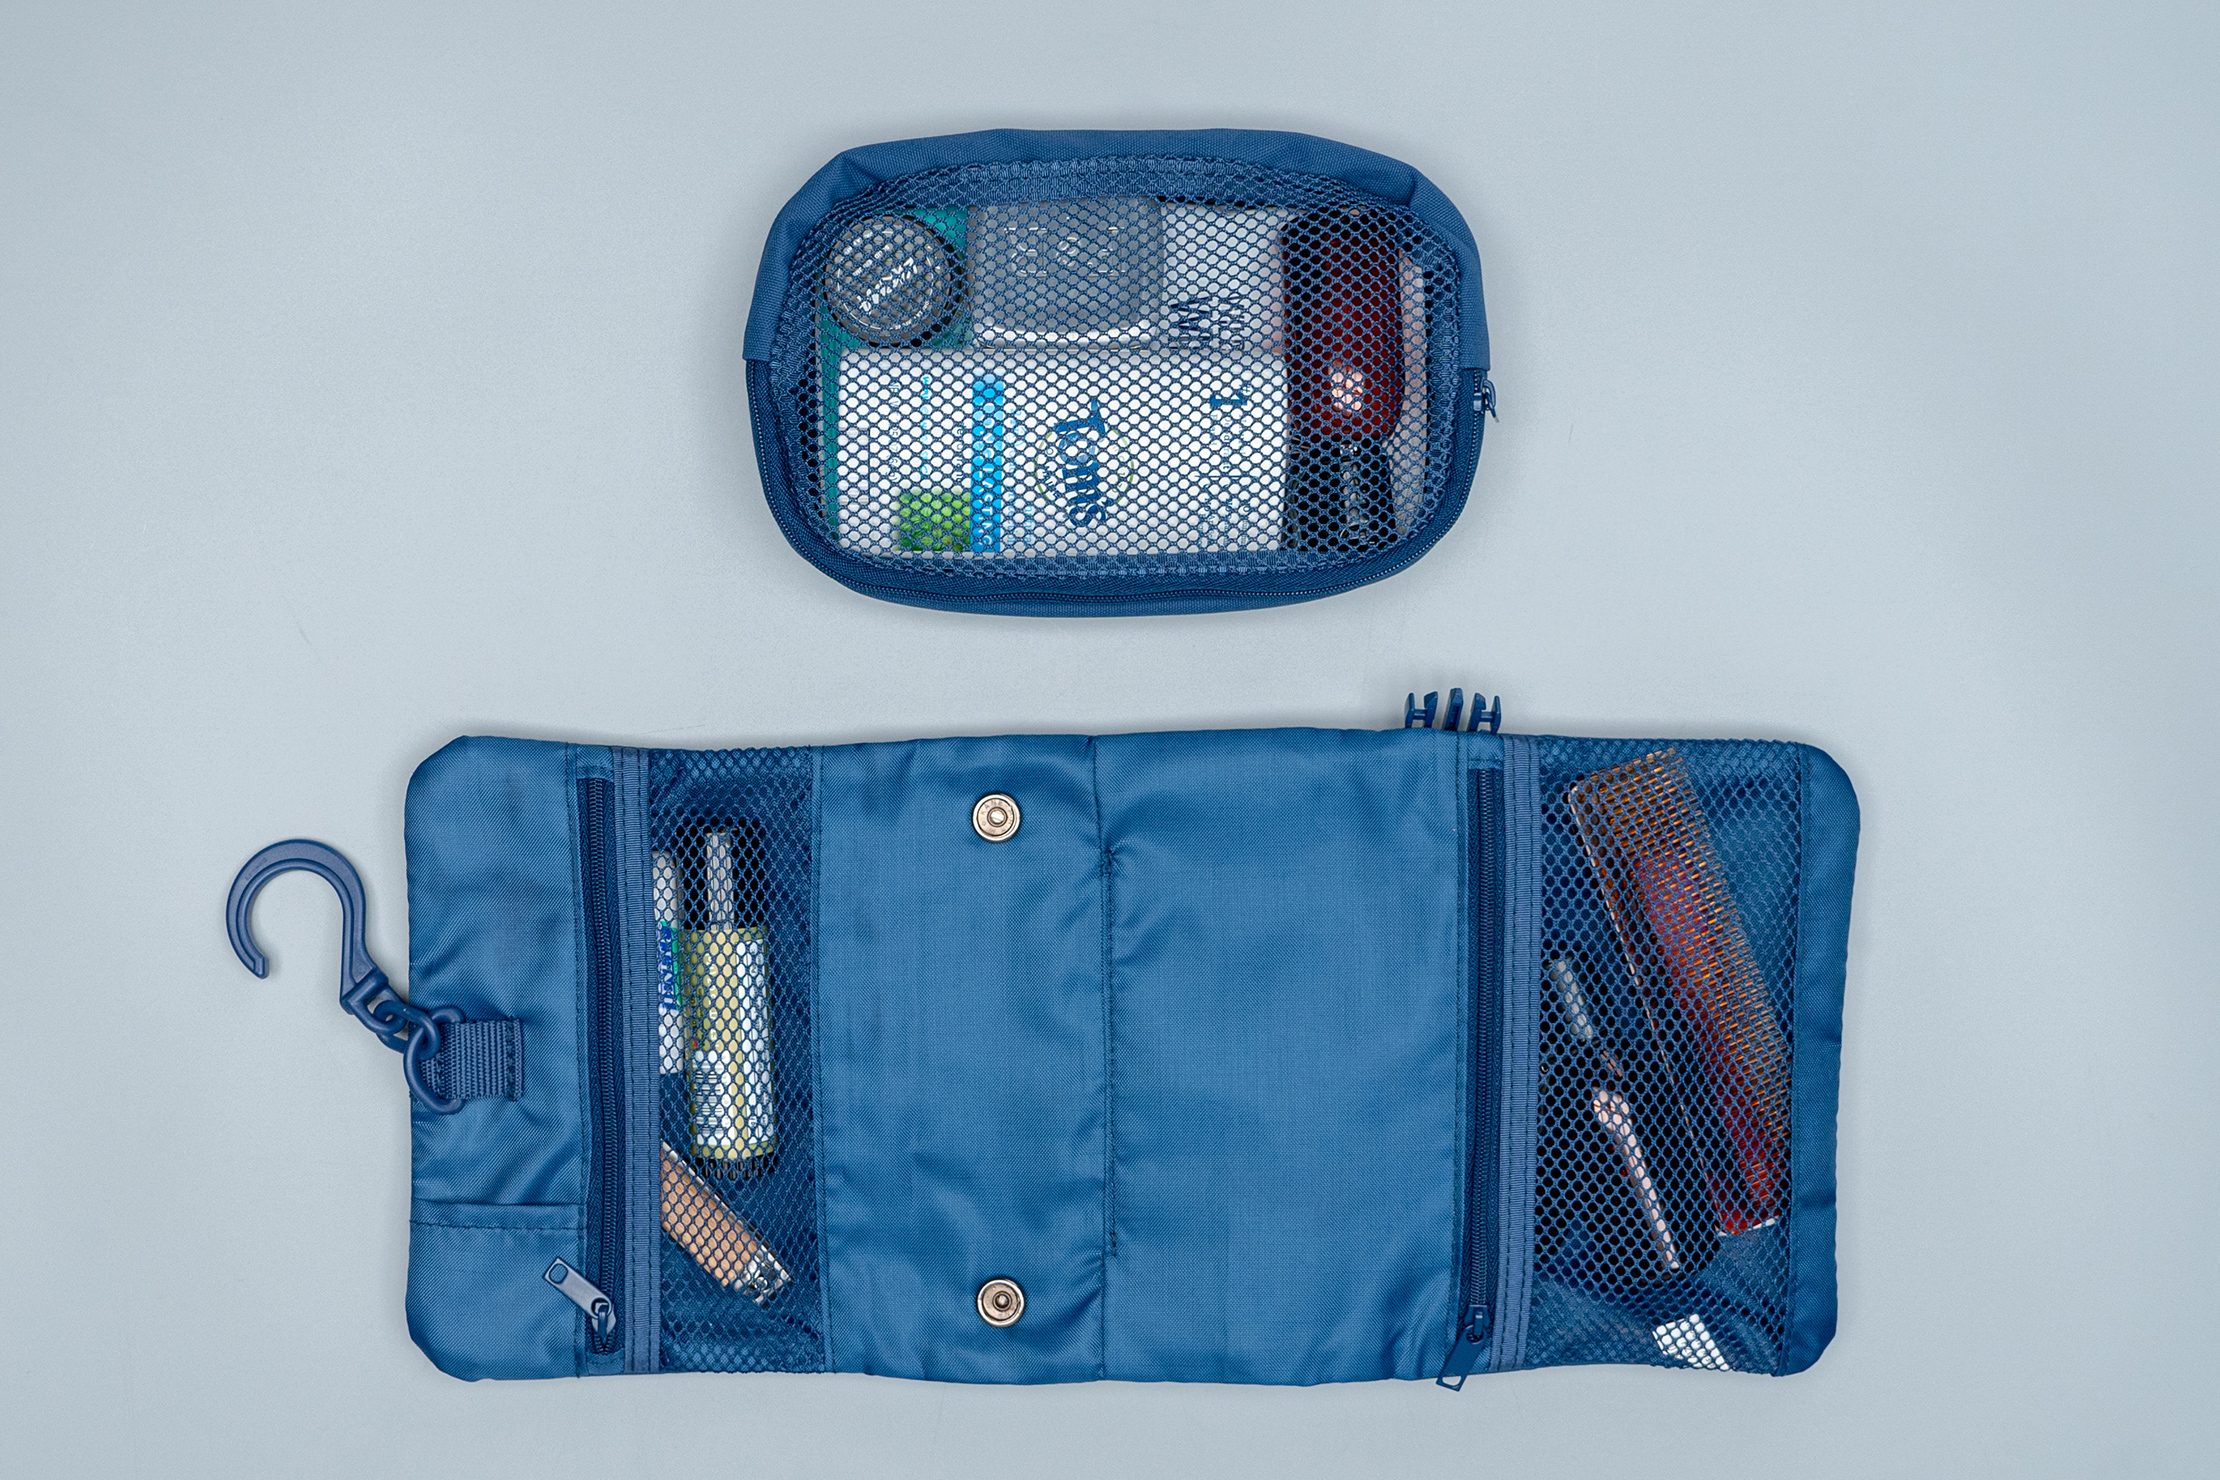 Muji Hanging Case With Pouches separated